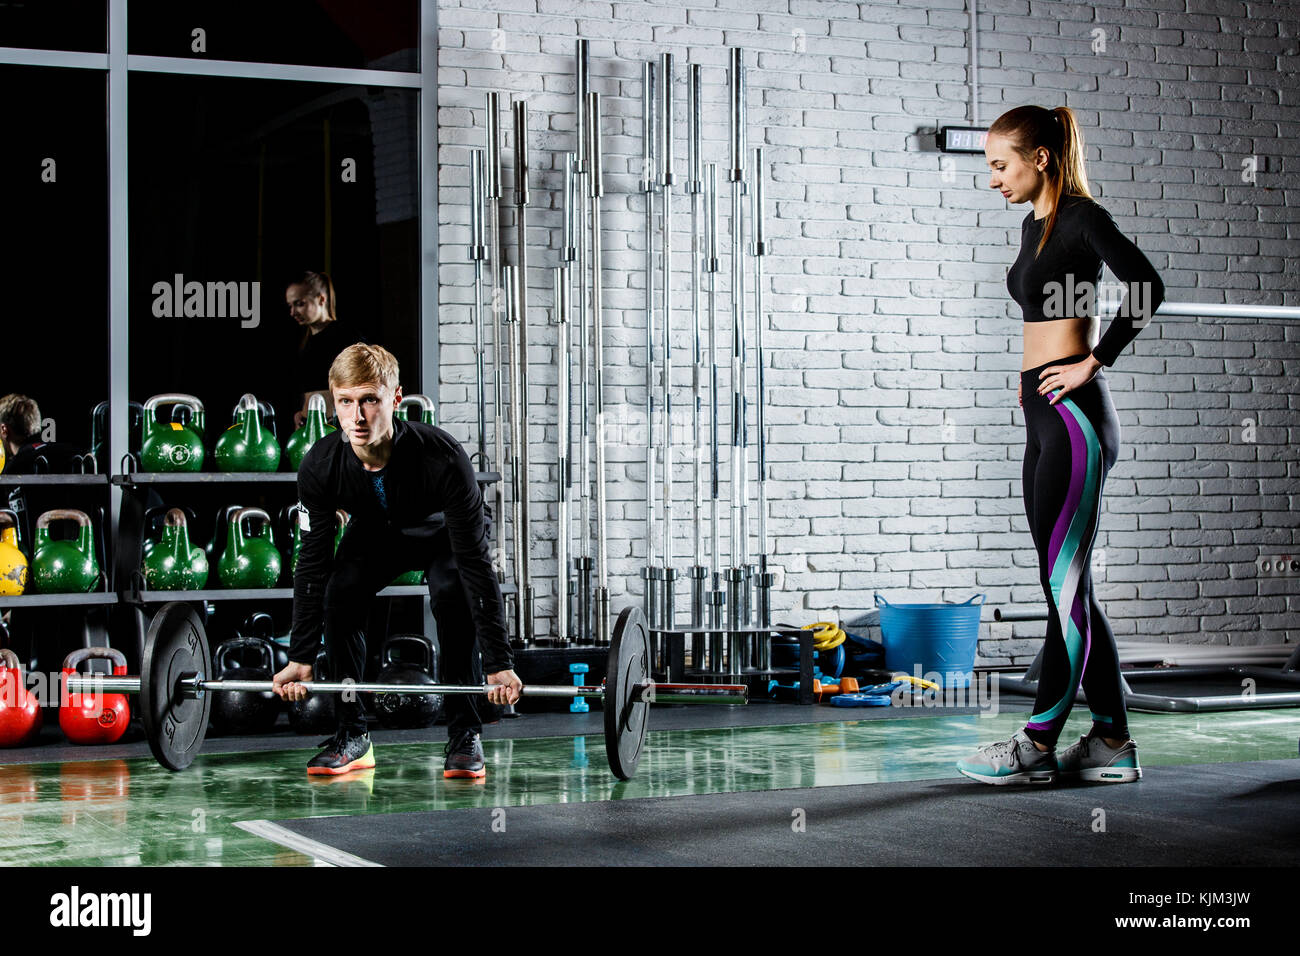 the coach show to the young girl how to perform the exercise with the stamp - Stock Image